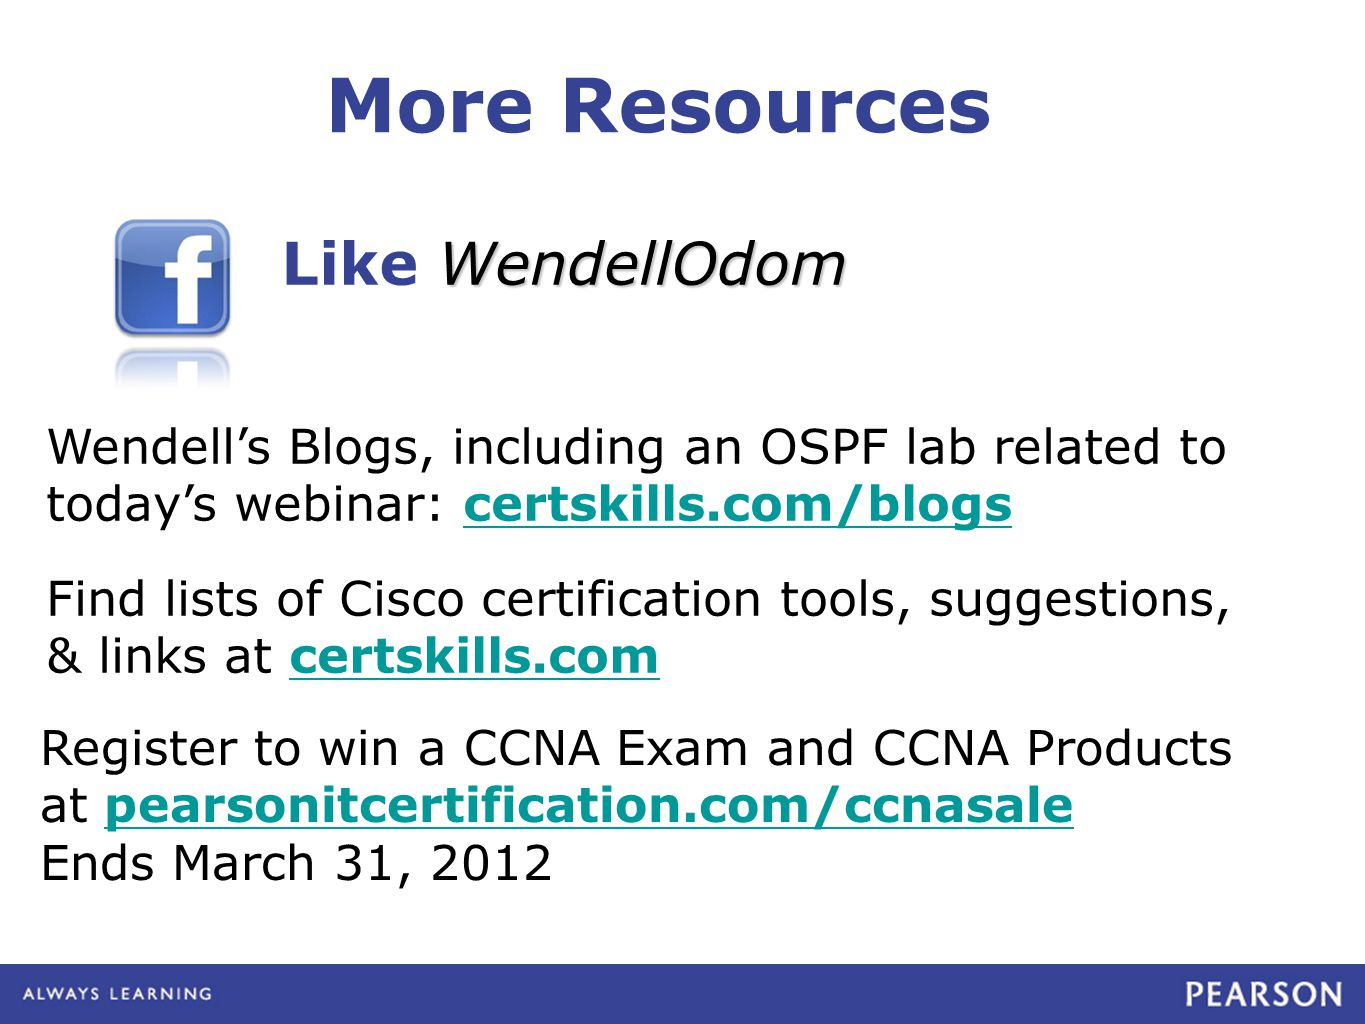 WendellOdom Like WendellOdom More Resources Find lists of Cisco certification tools, suggestions, & links at certskills.comcertskills.com Register to win a CCNA Exam and CCNA Products at pearsonitcertification.com/ccnasalepearsonitcertification.com/ccnasale Ends March 31, 2012 Wendell's Blogs, including an OSPF lab related to today's webinar: certskills.com/blogscertskills.com/blogs